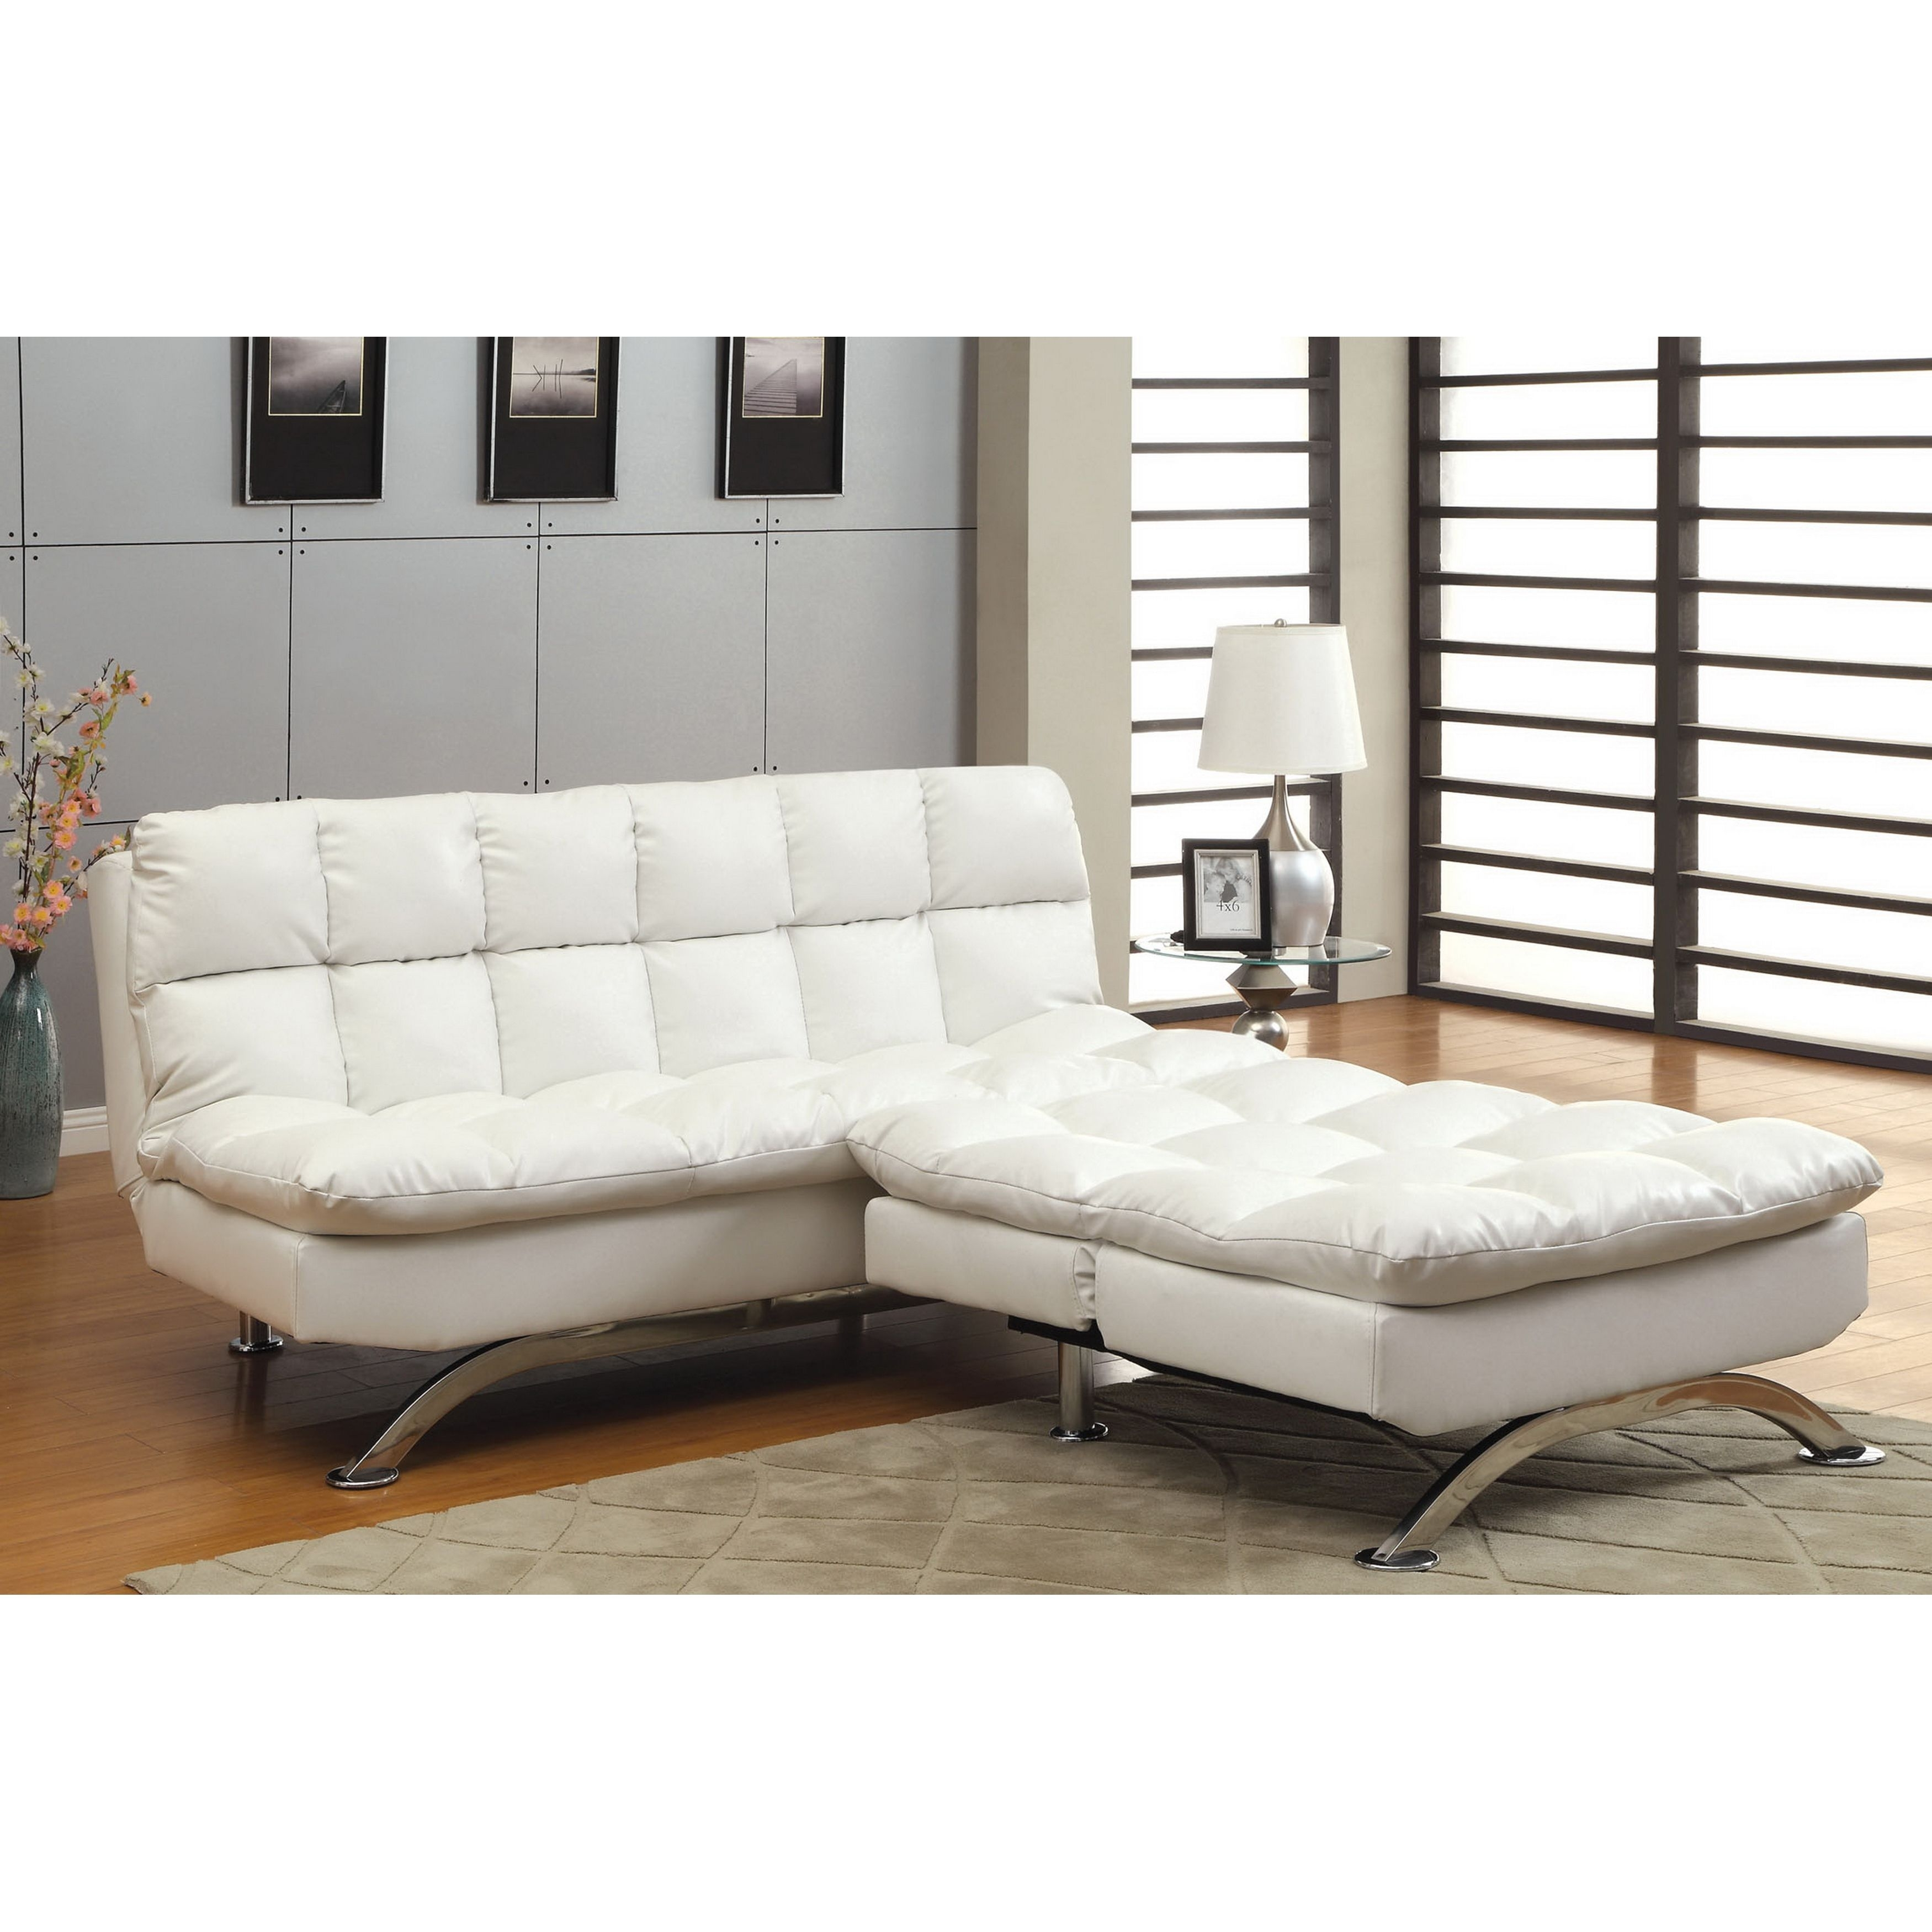 Futon Sofa Home Decor Furniture Modern Tufted Jamaica Convertible intended for Jamaica Sectional Sofas (Image 3 of 10)